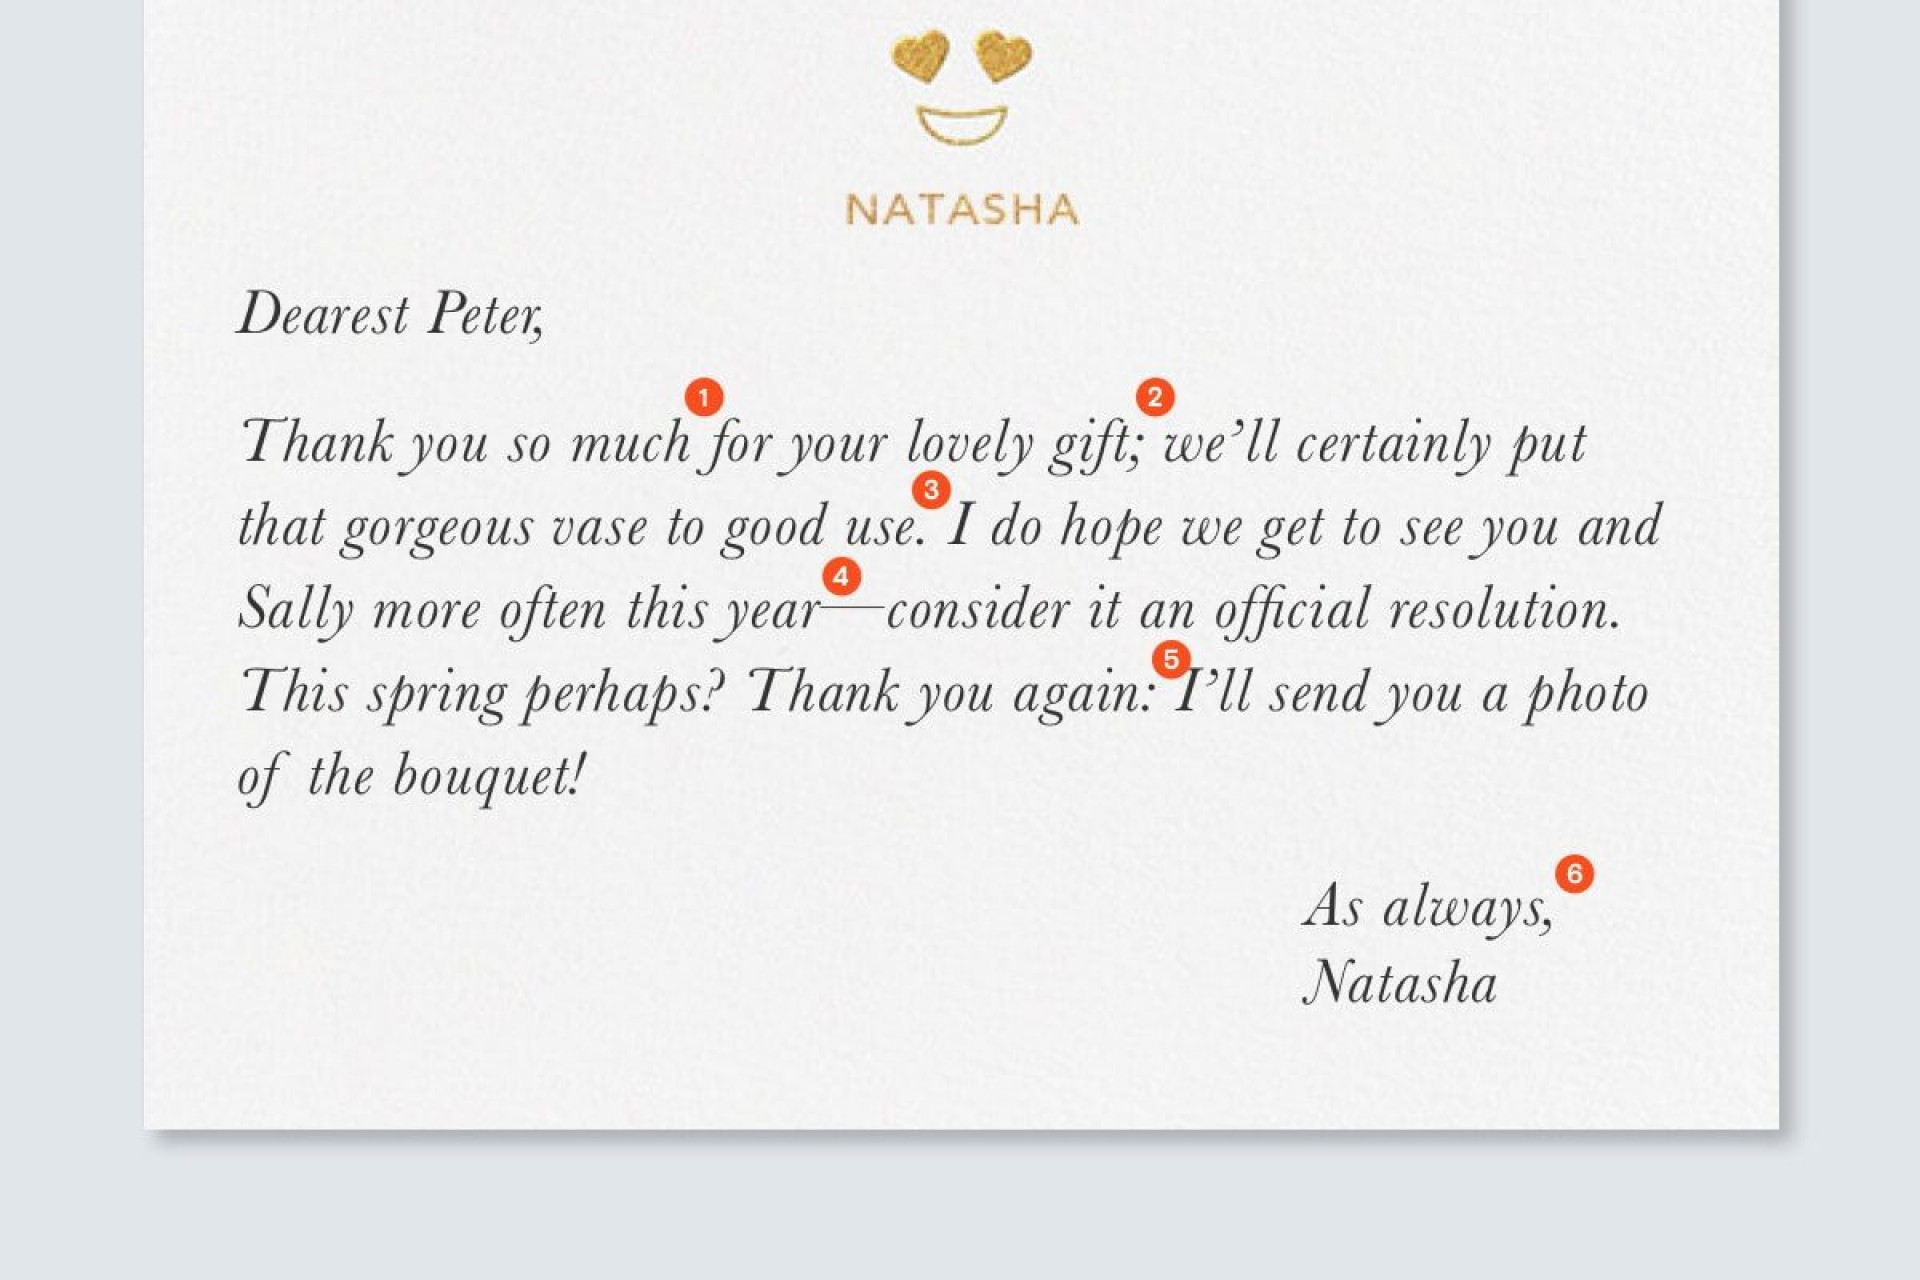 005 Wonderful Thank You Note Template Wedding Money Design  Card Example For Sample Cash Gift1920